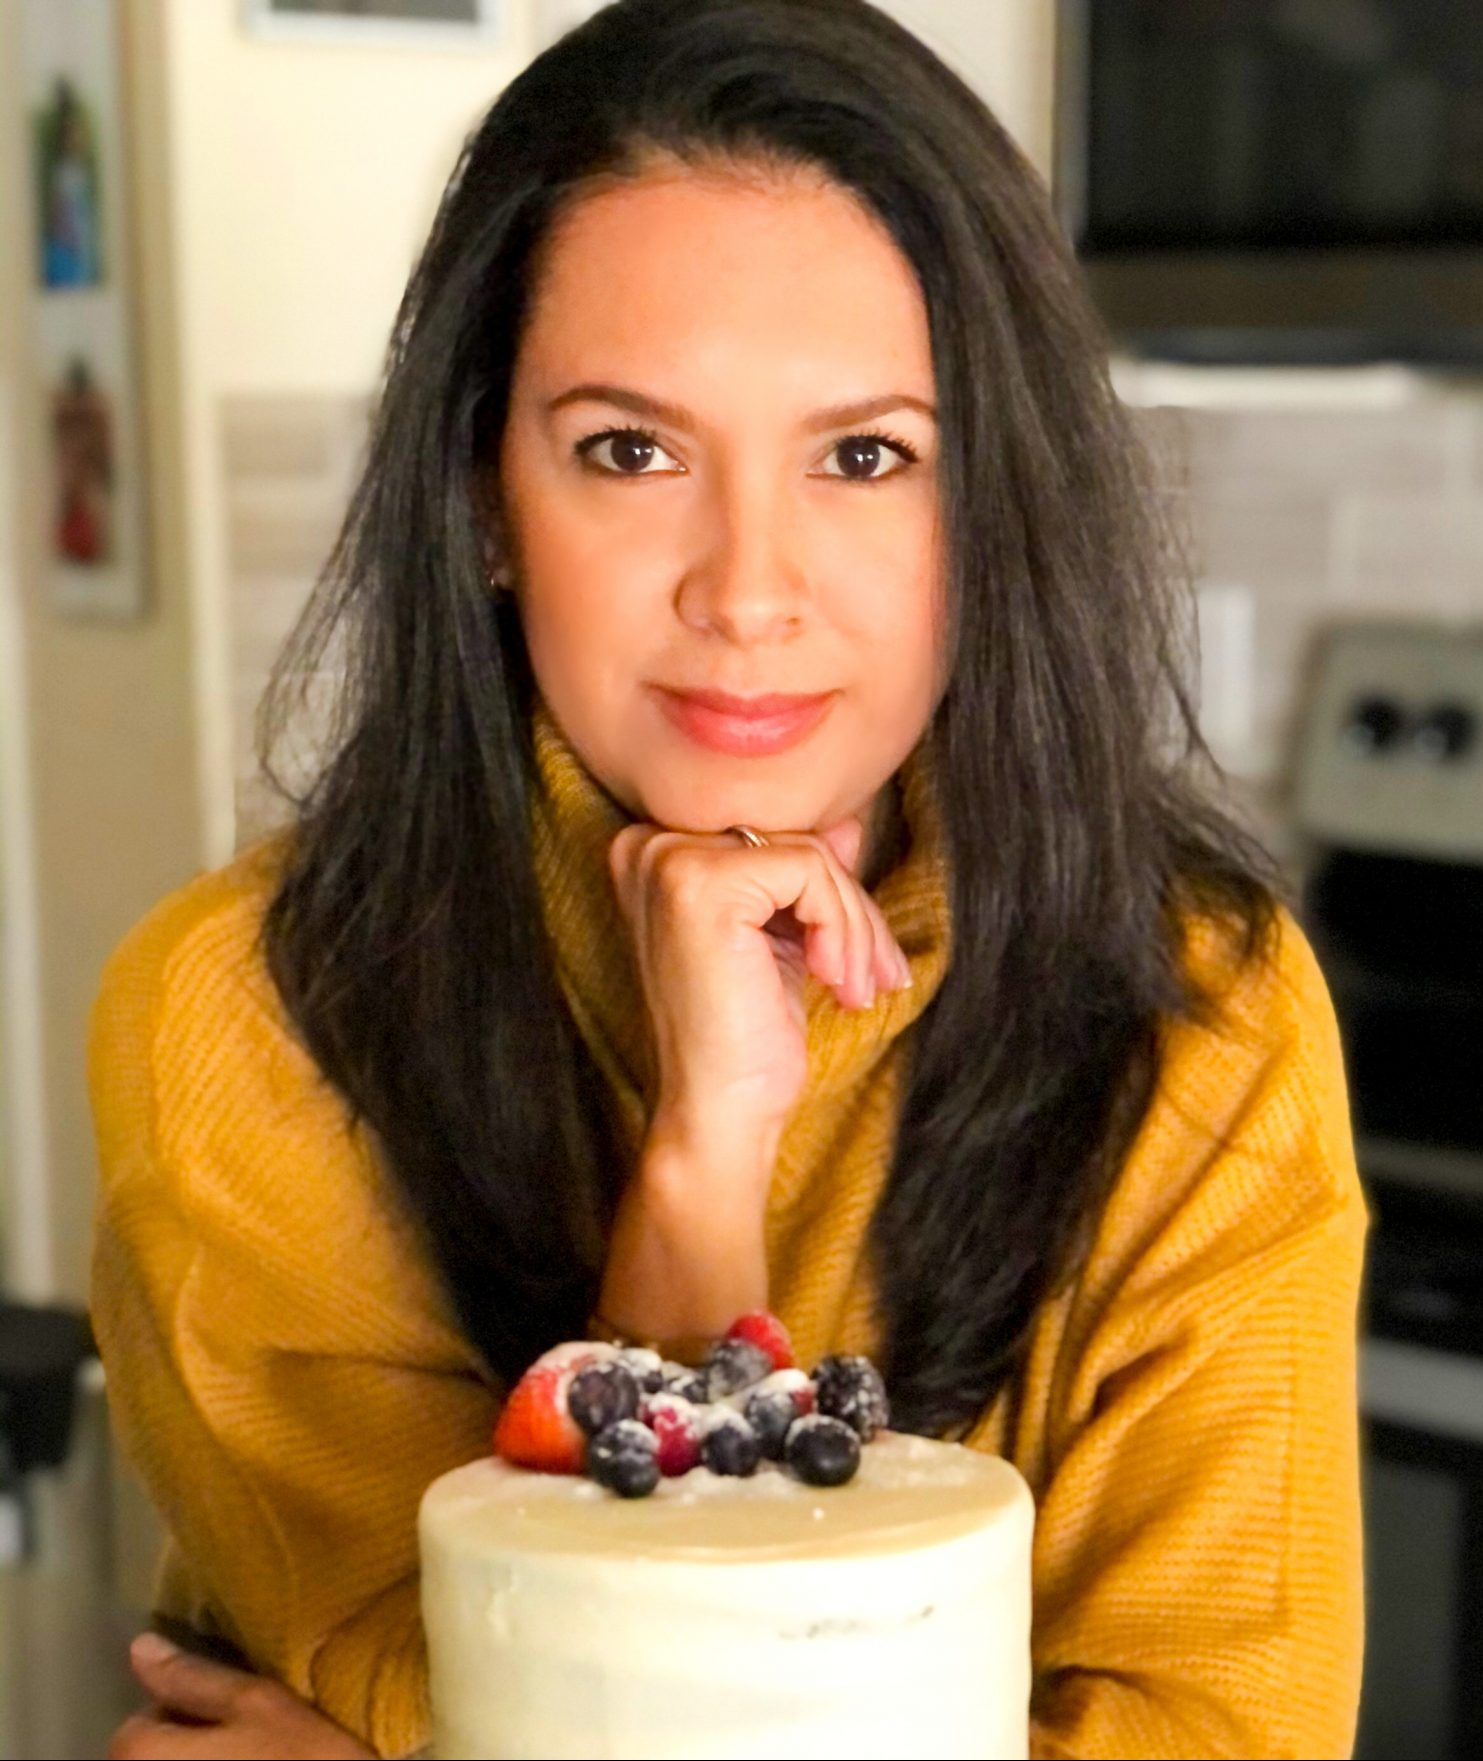 About Marisol Cooks